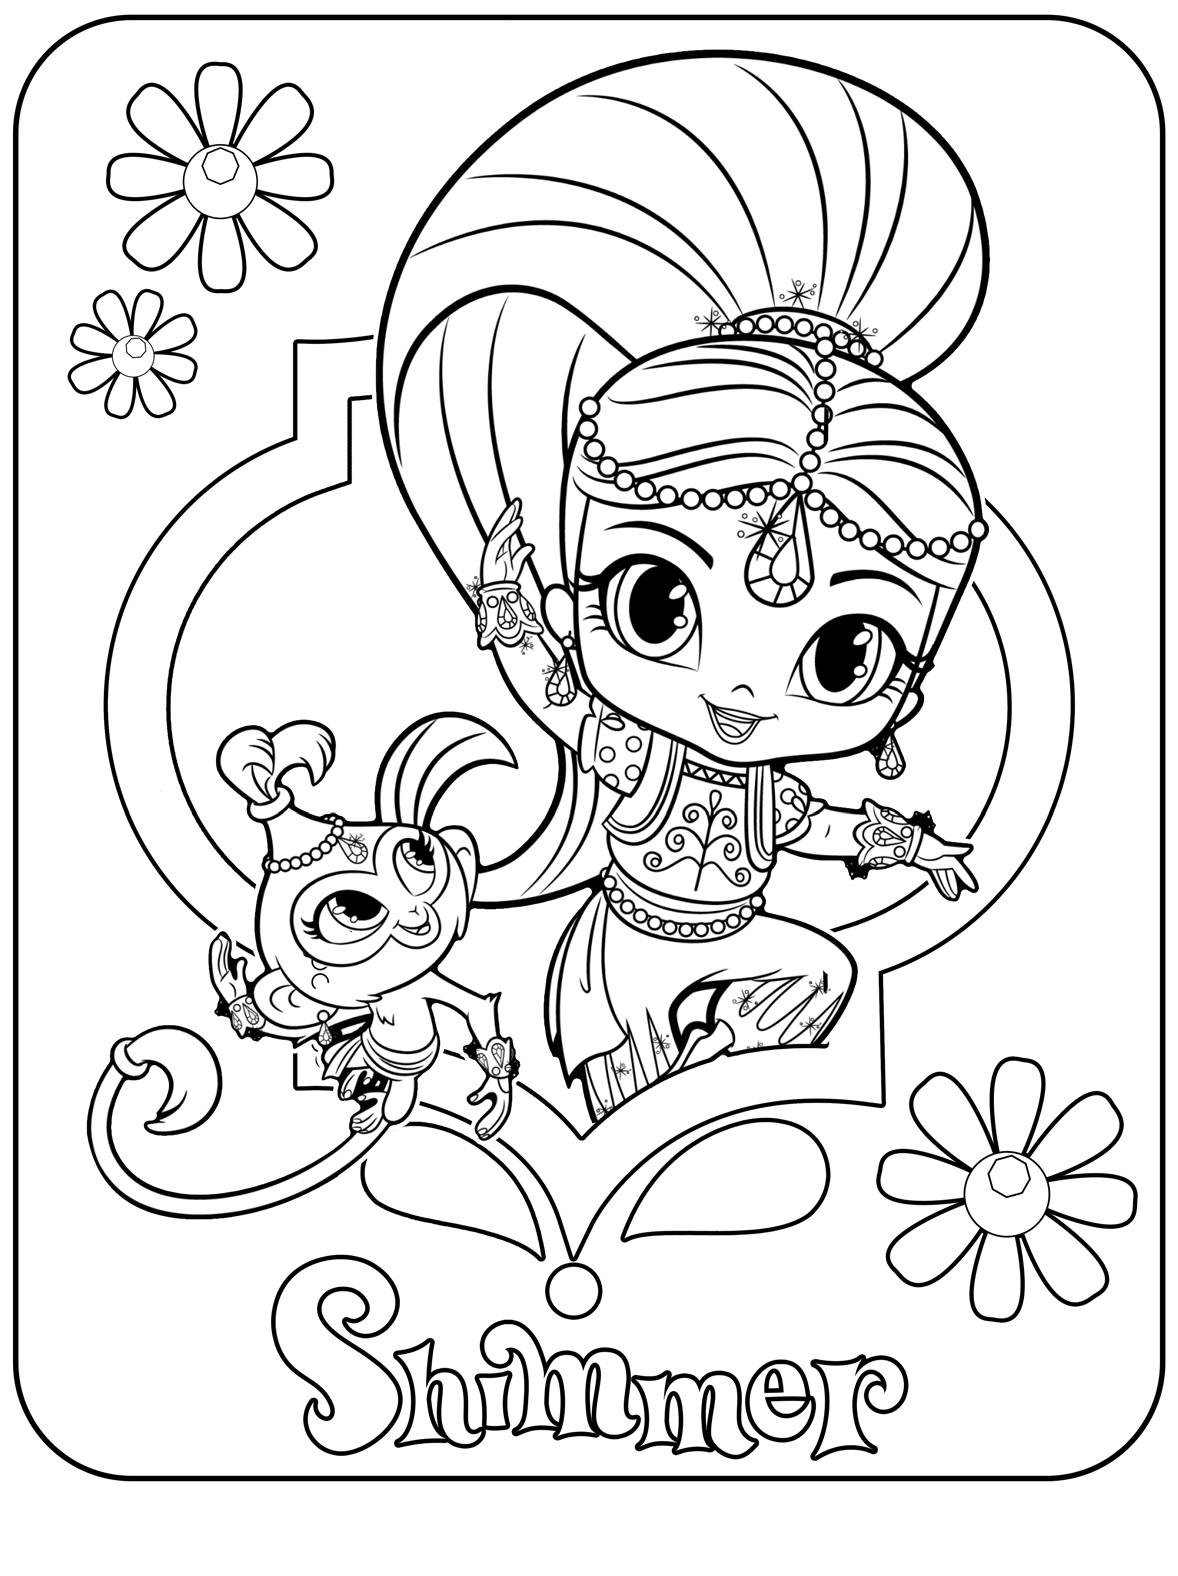 shimmer and shine to color shimmer and shine magic carpet colouring page nick jr uk shine to color and shimmer